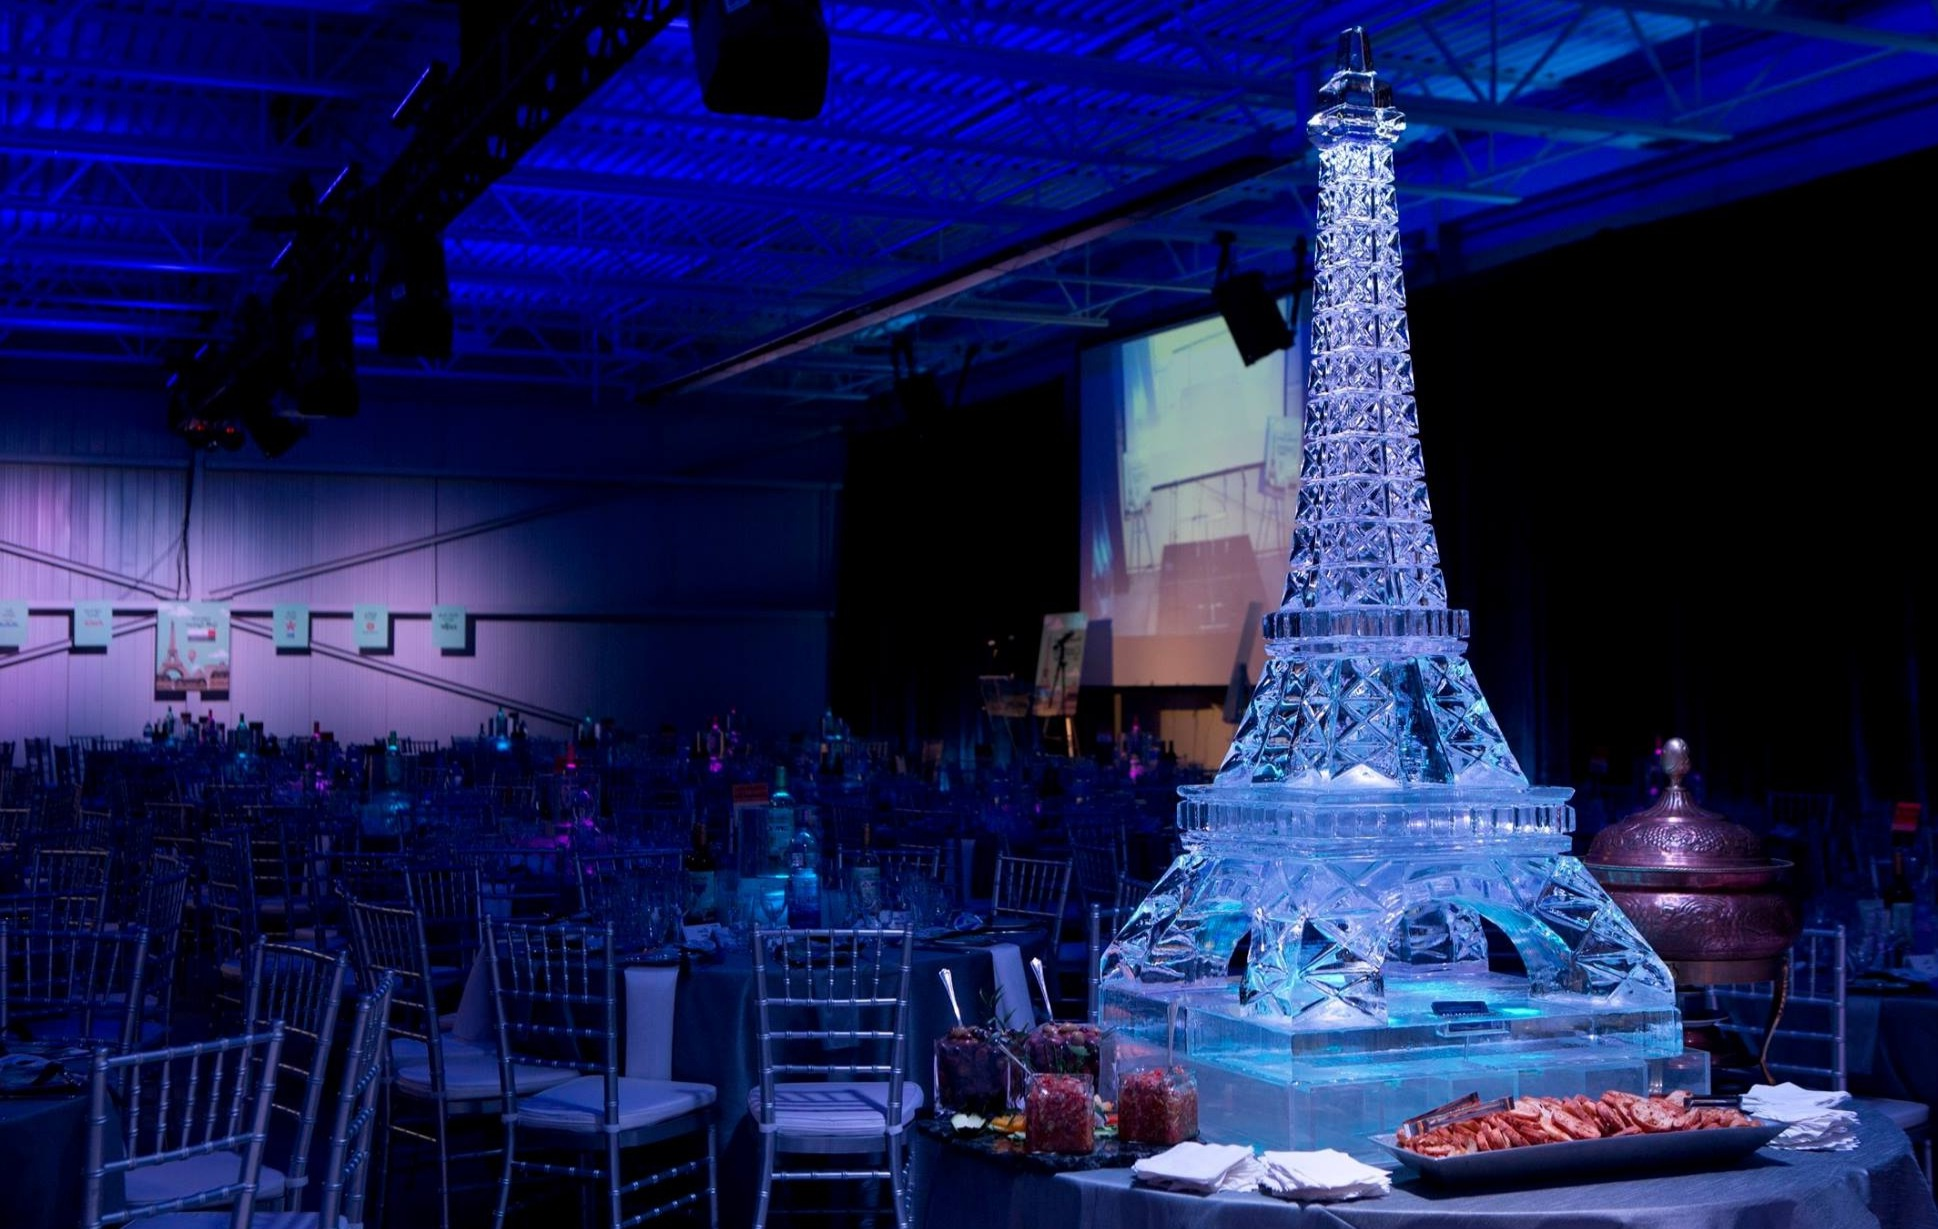 an ice sculpture in the shape of the Eiffel Tower on a table with hors d'oeuvres